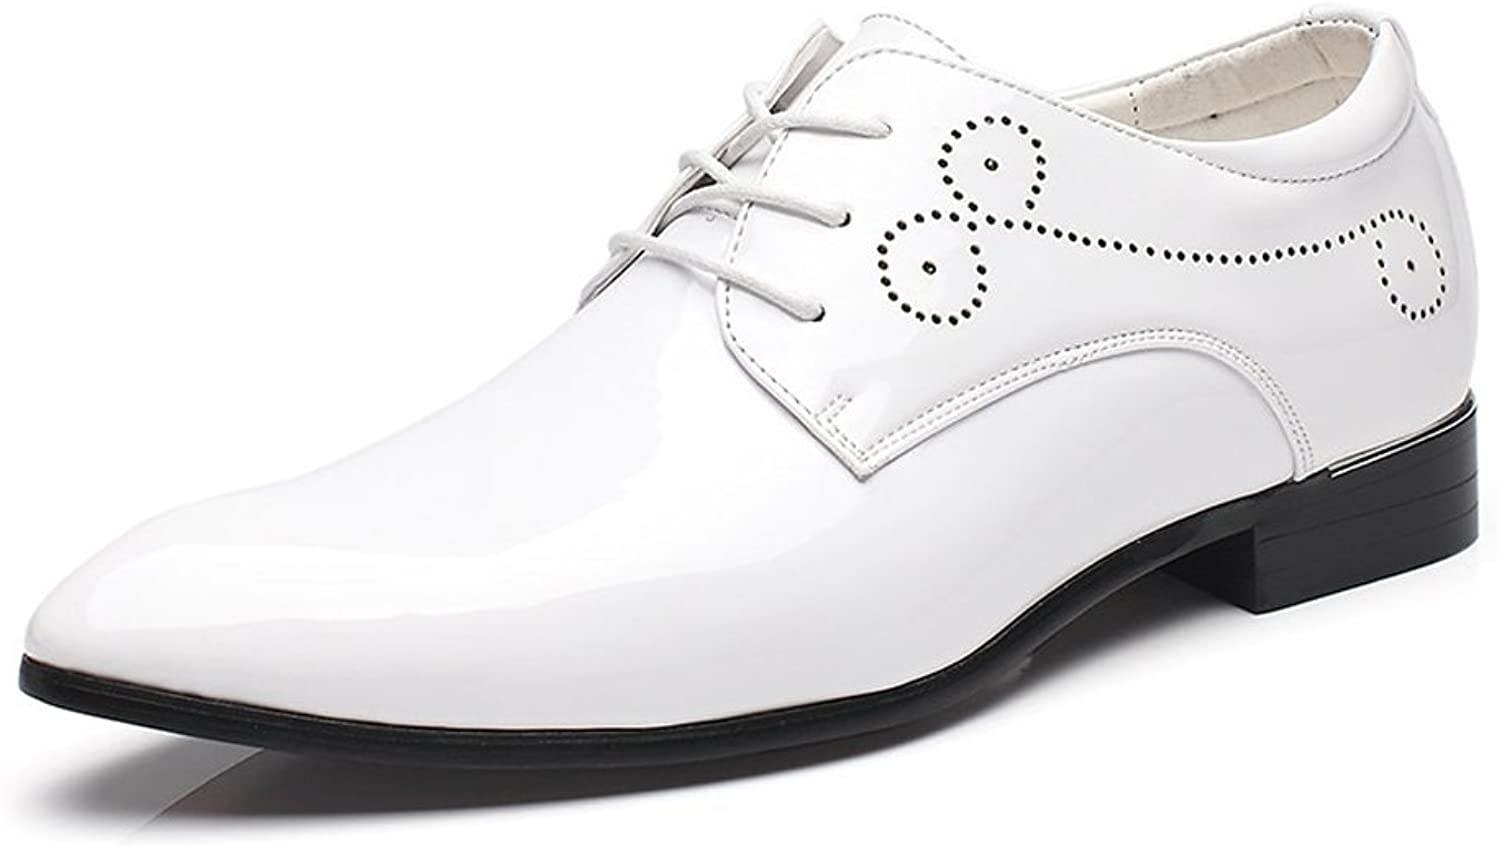 Z.L.F Men's Formal shoes Burnished Smooth PU Leather shoes Classic Lace Up Business Tuxedo Oxfords shoes